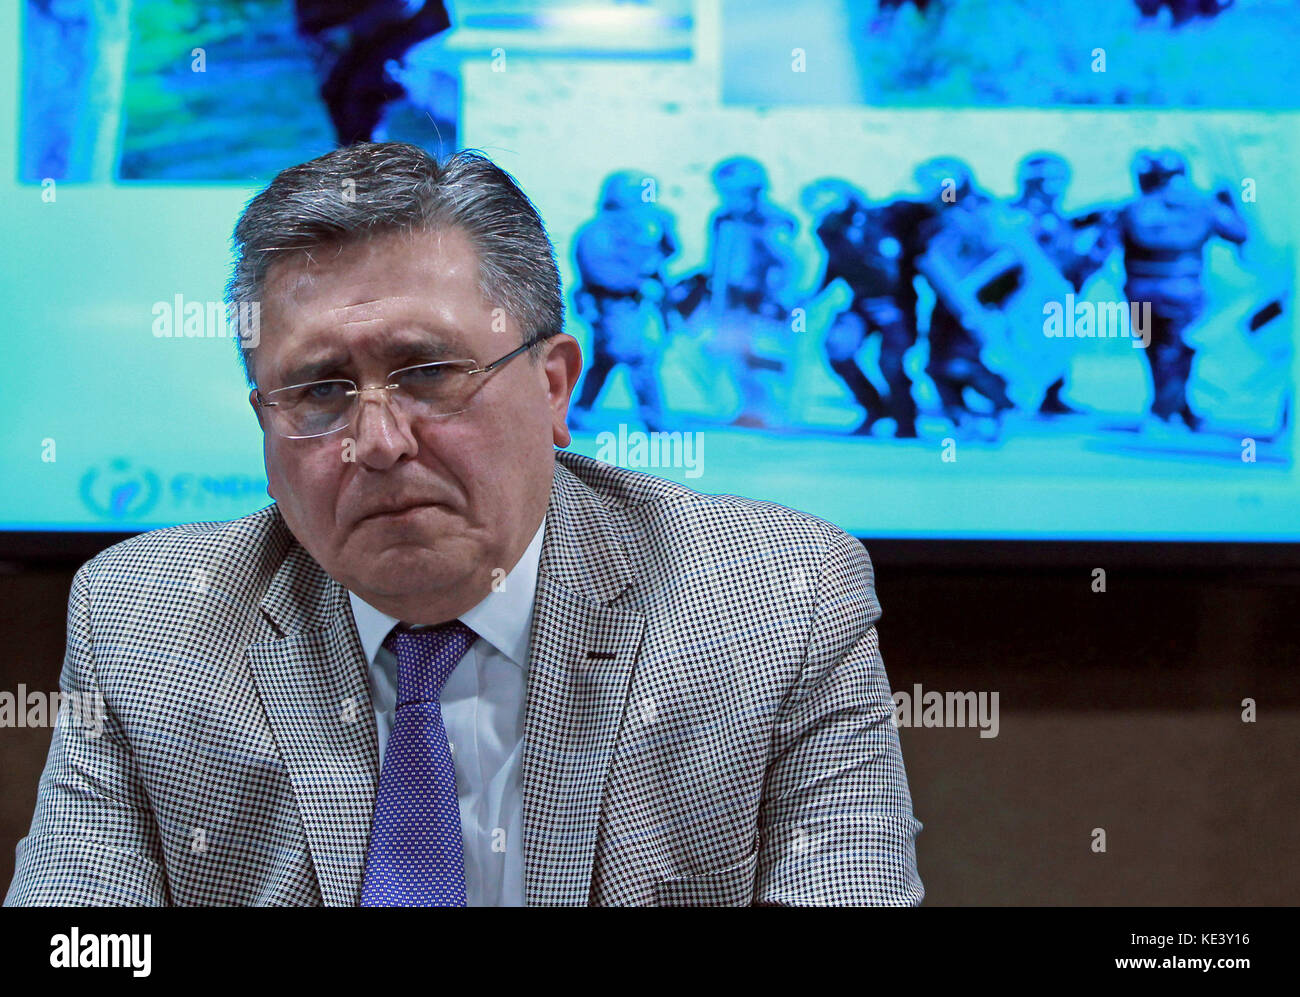 The head of the National Commission of Human Rights (CNDH) Luis Raul Gonzalez offers a press conference in Mexico - Stock Image